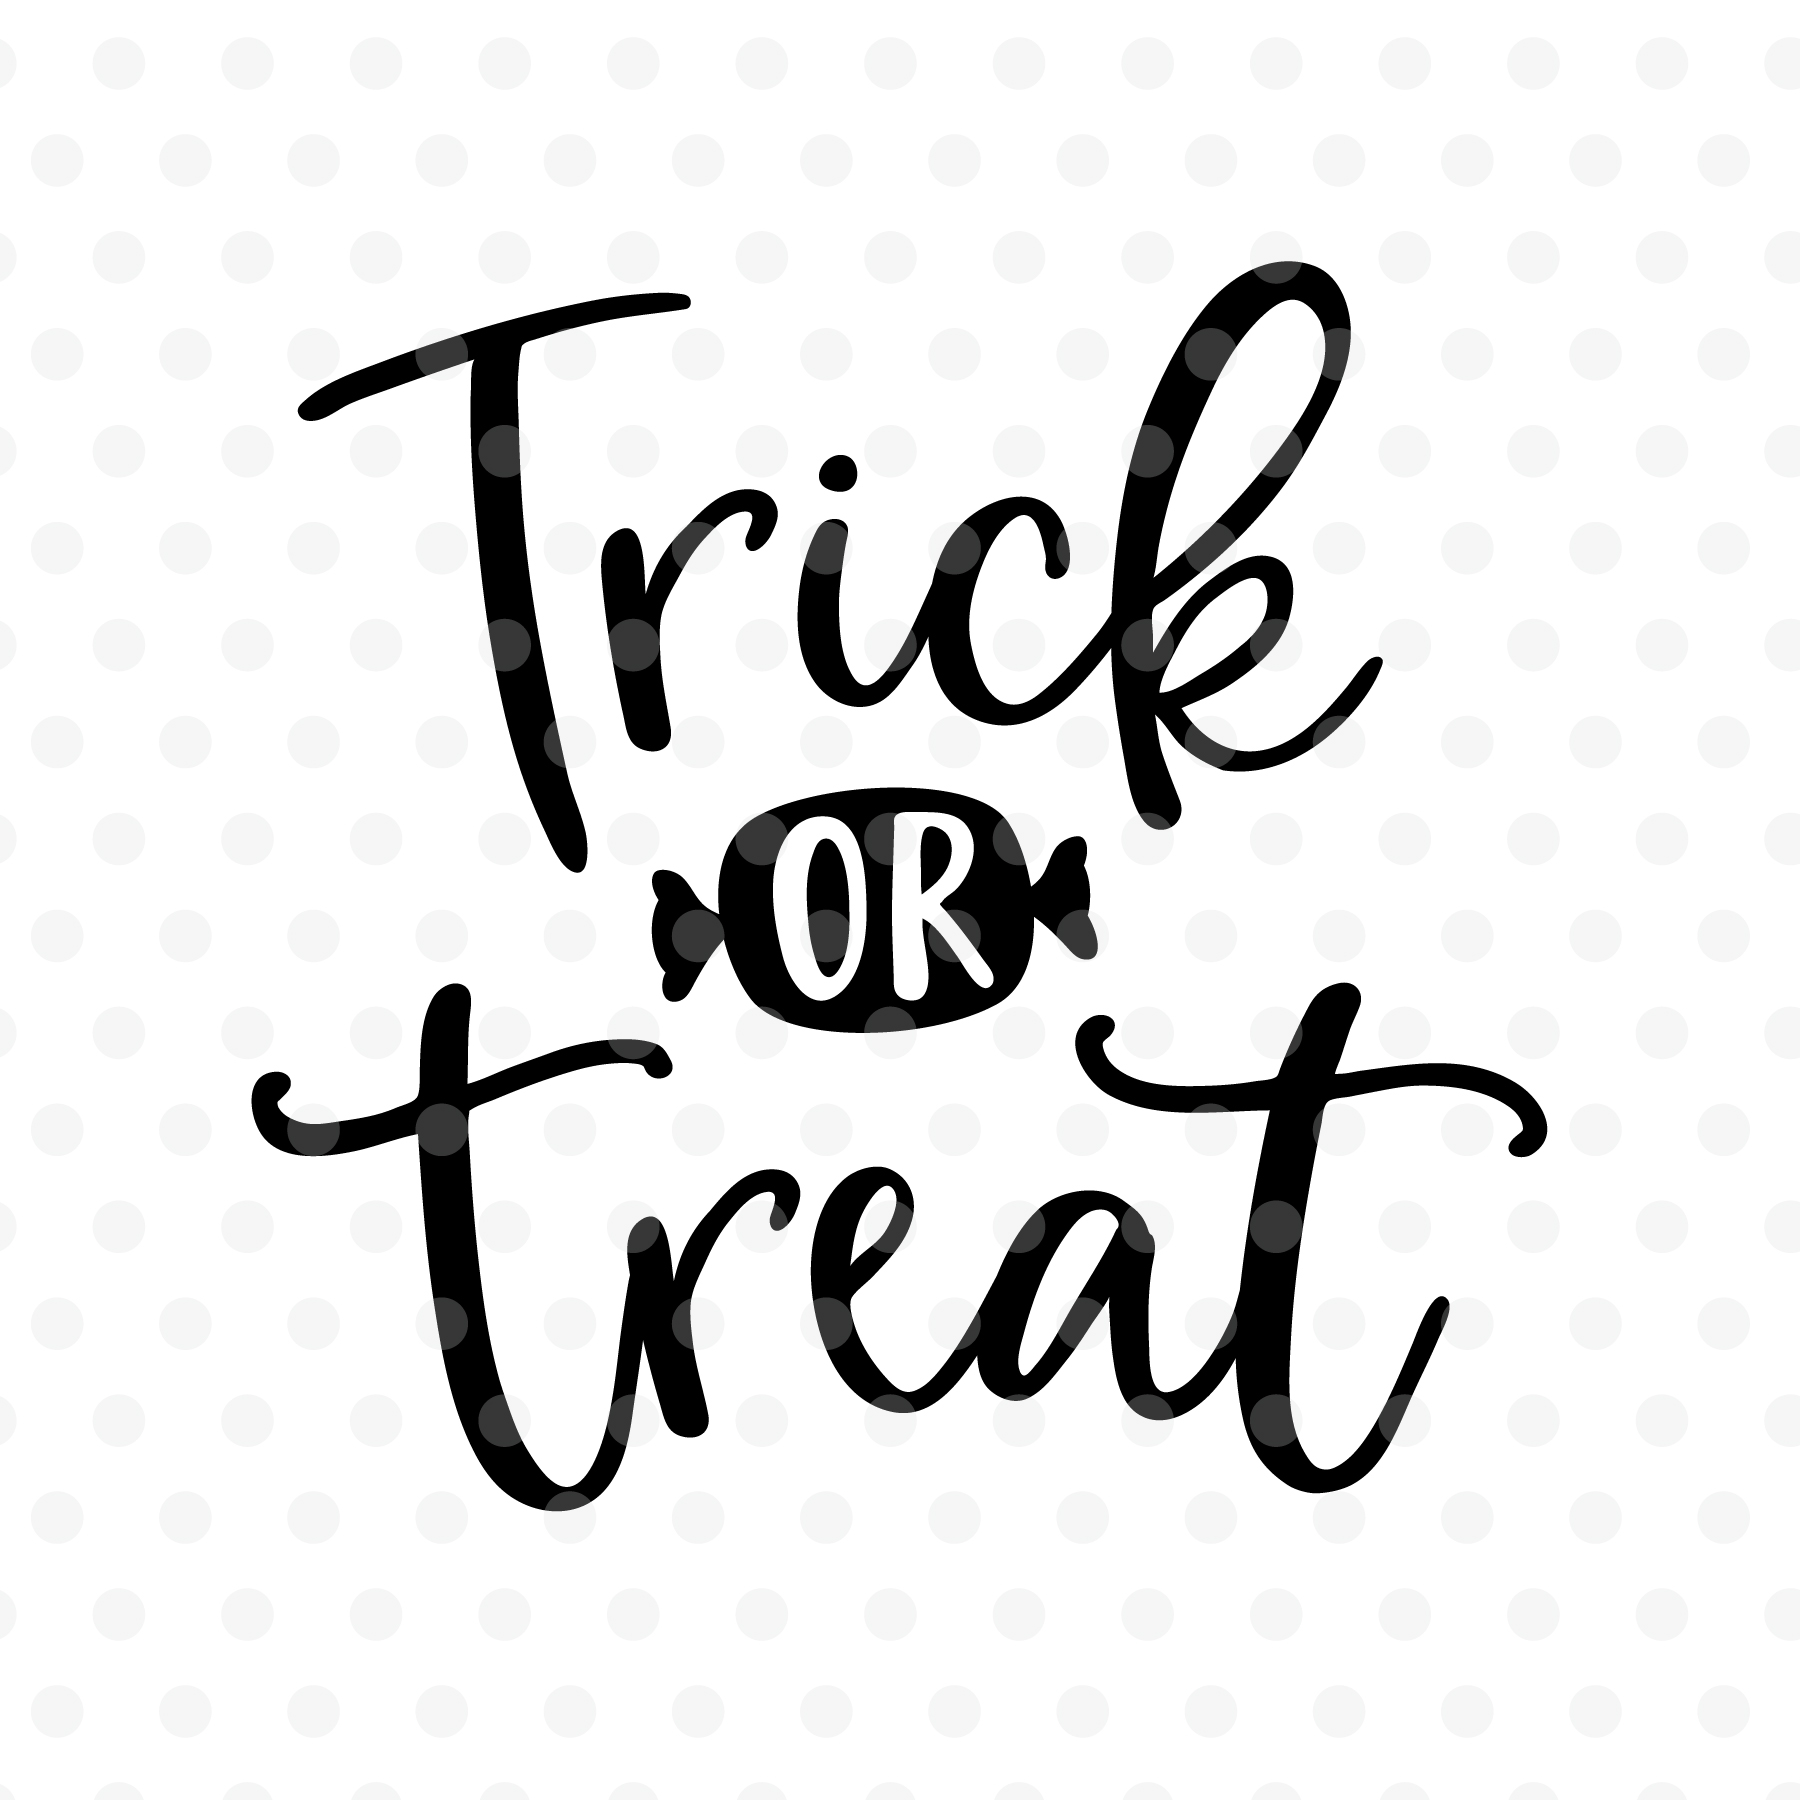 Trick or treat Halloween SVG, EPS, PNG, DXF example image 2